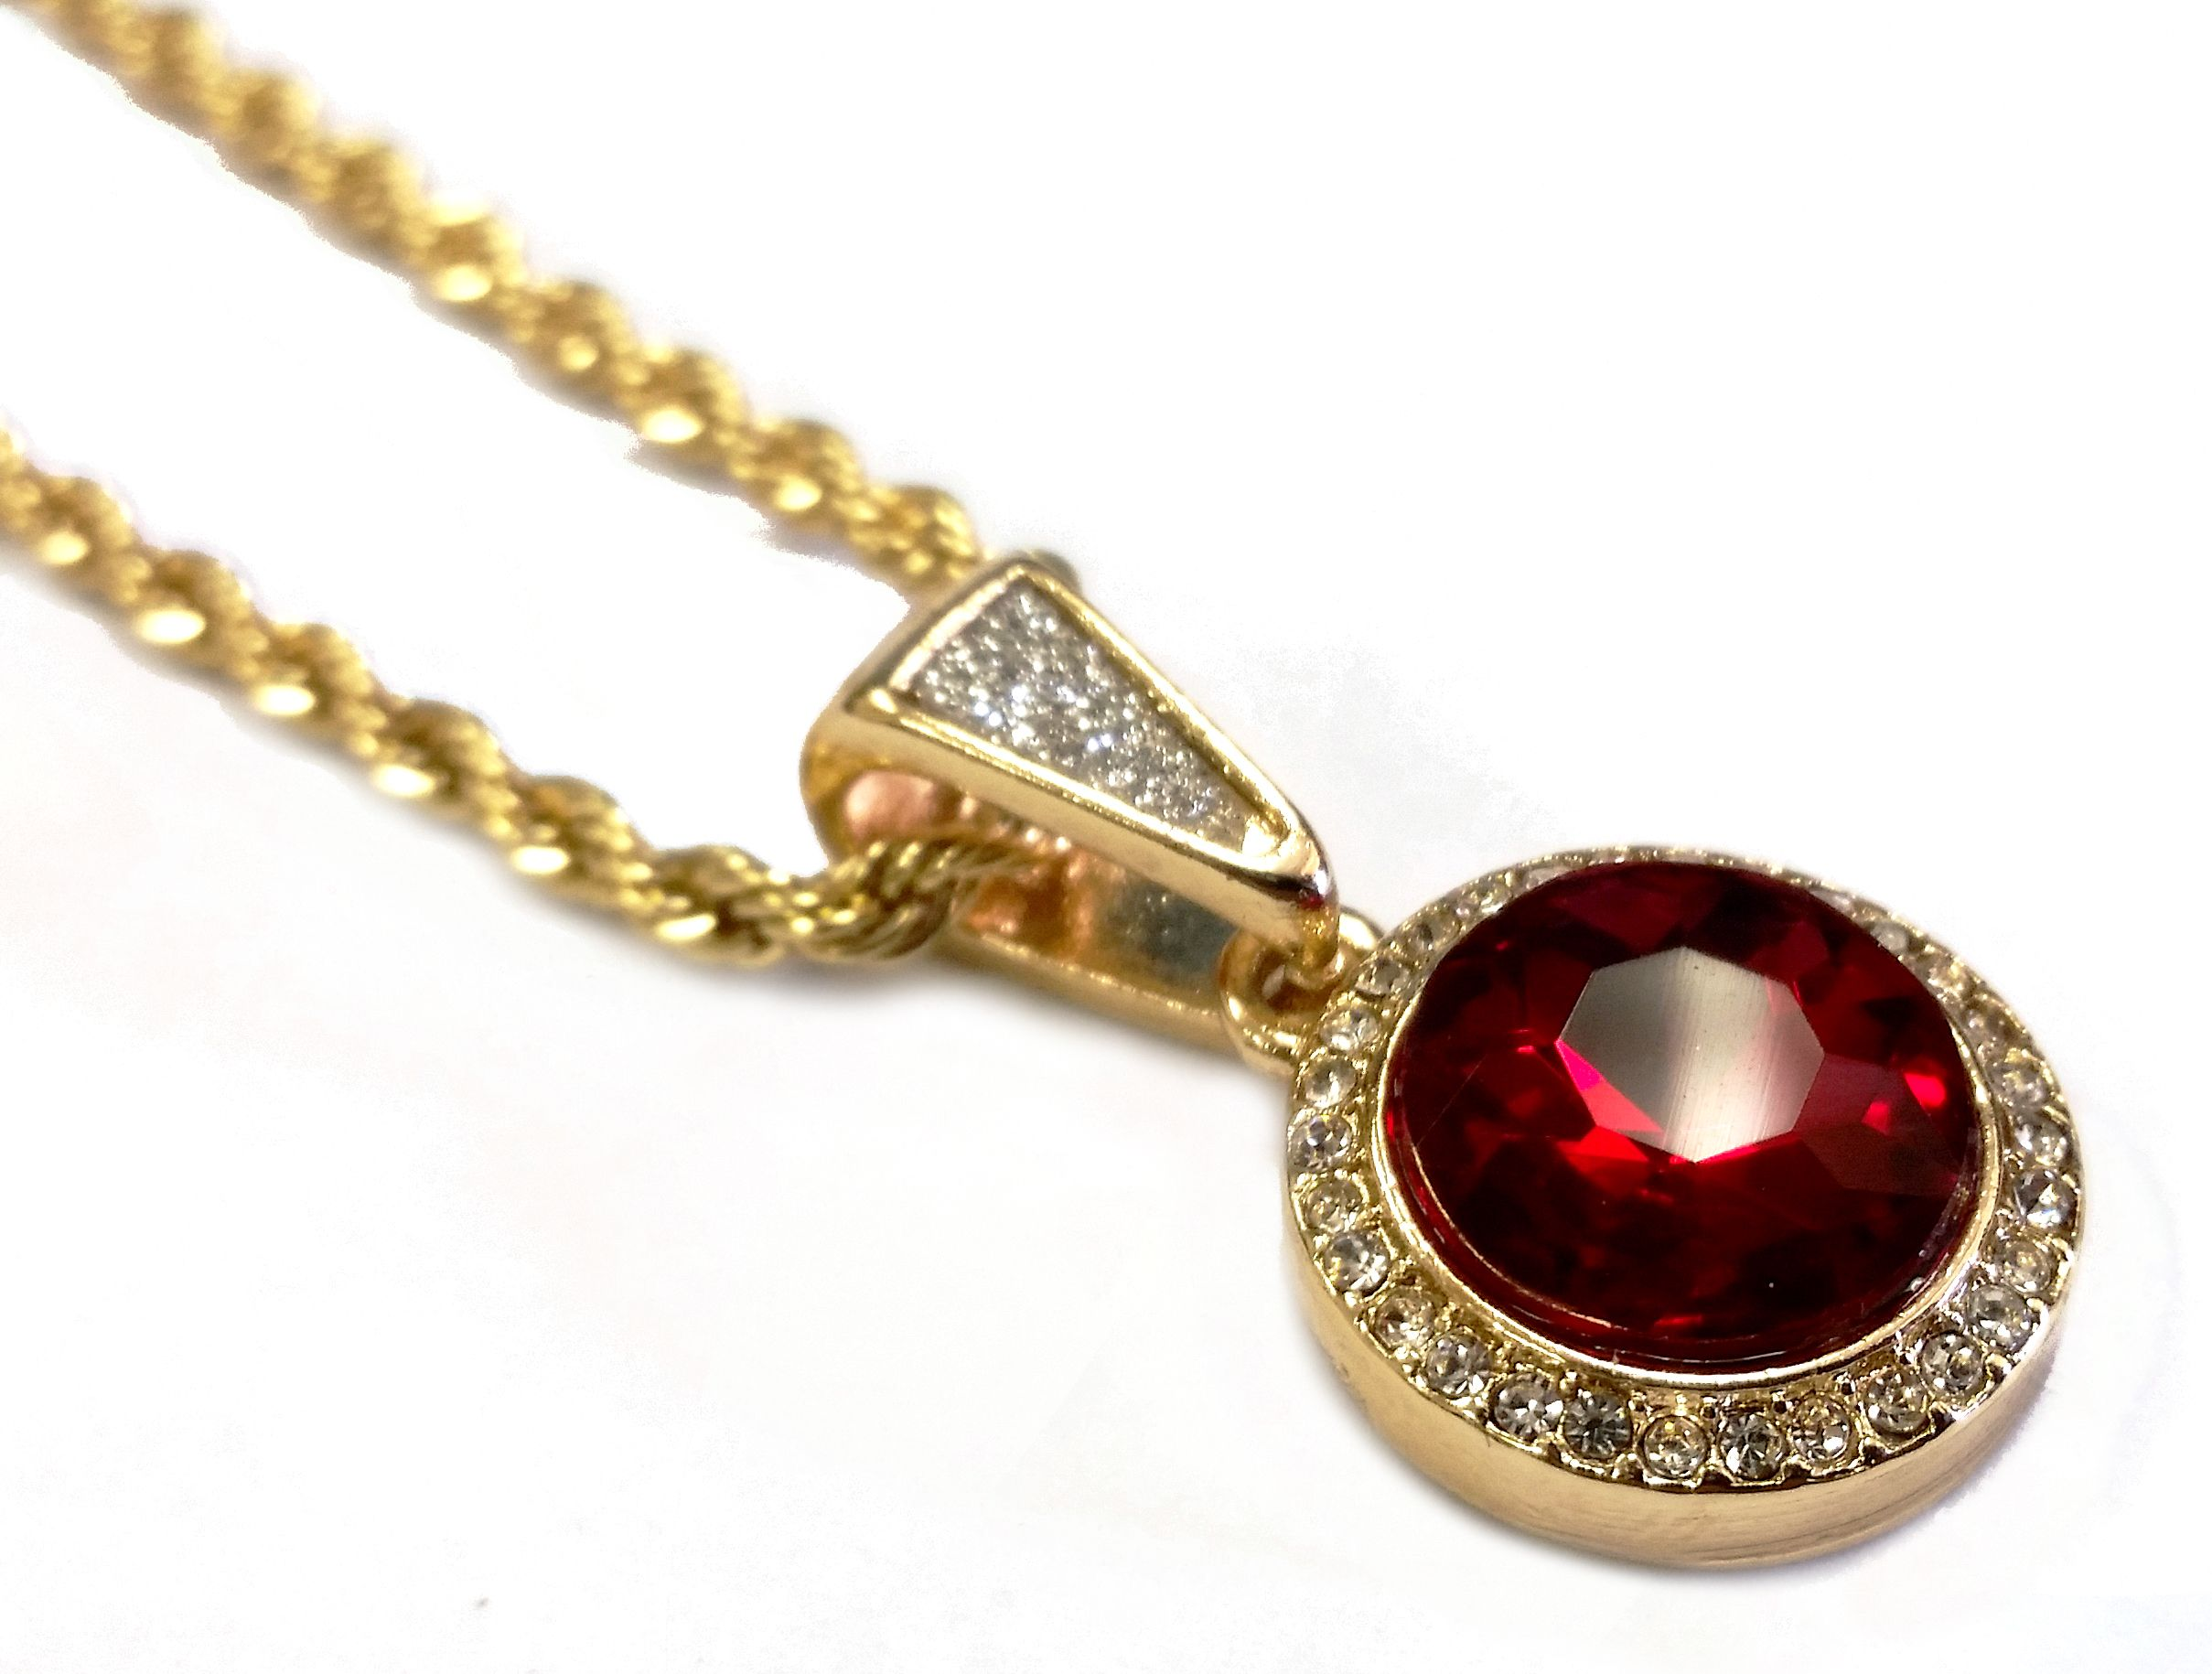 Labmade ruby pendant necklace with